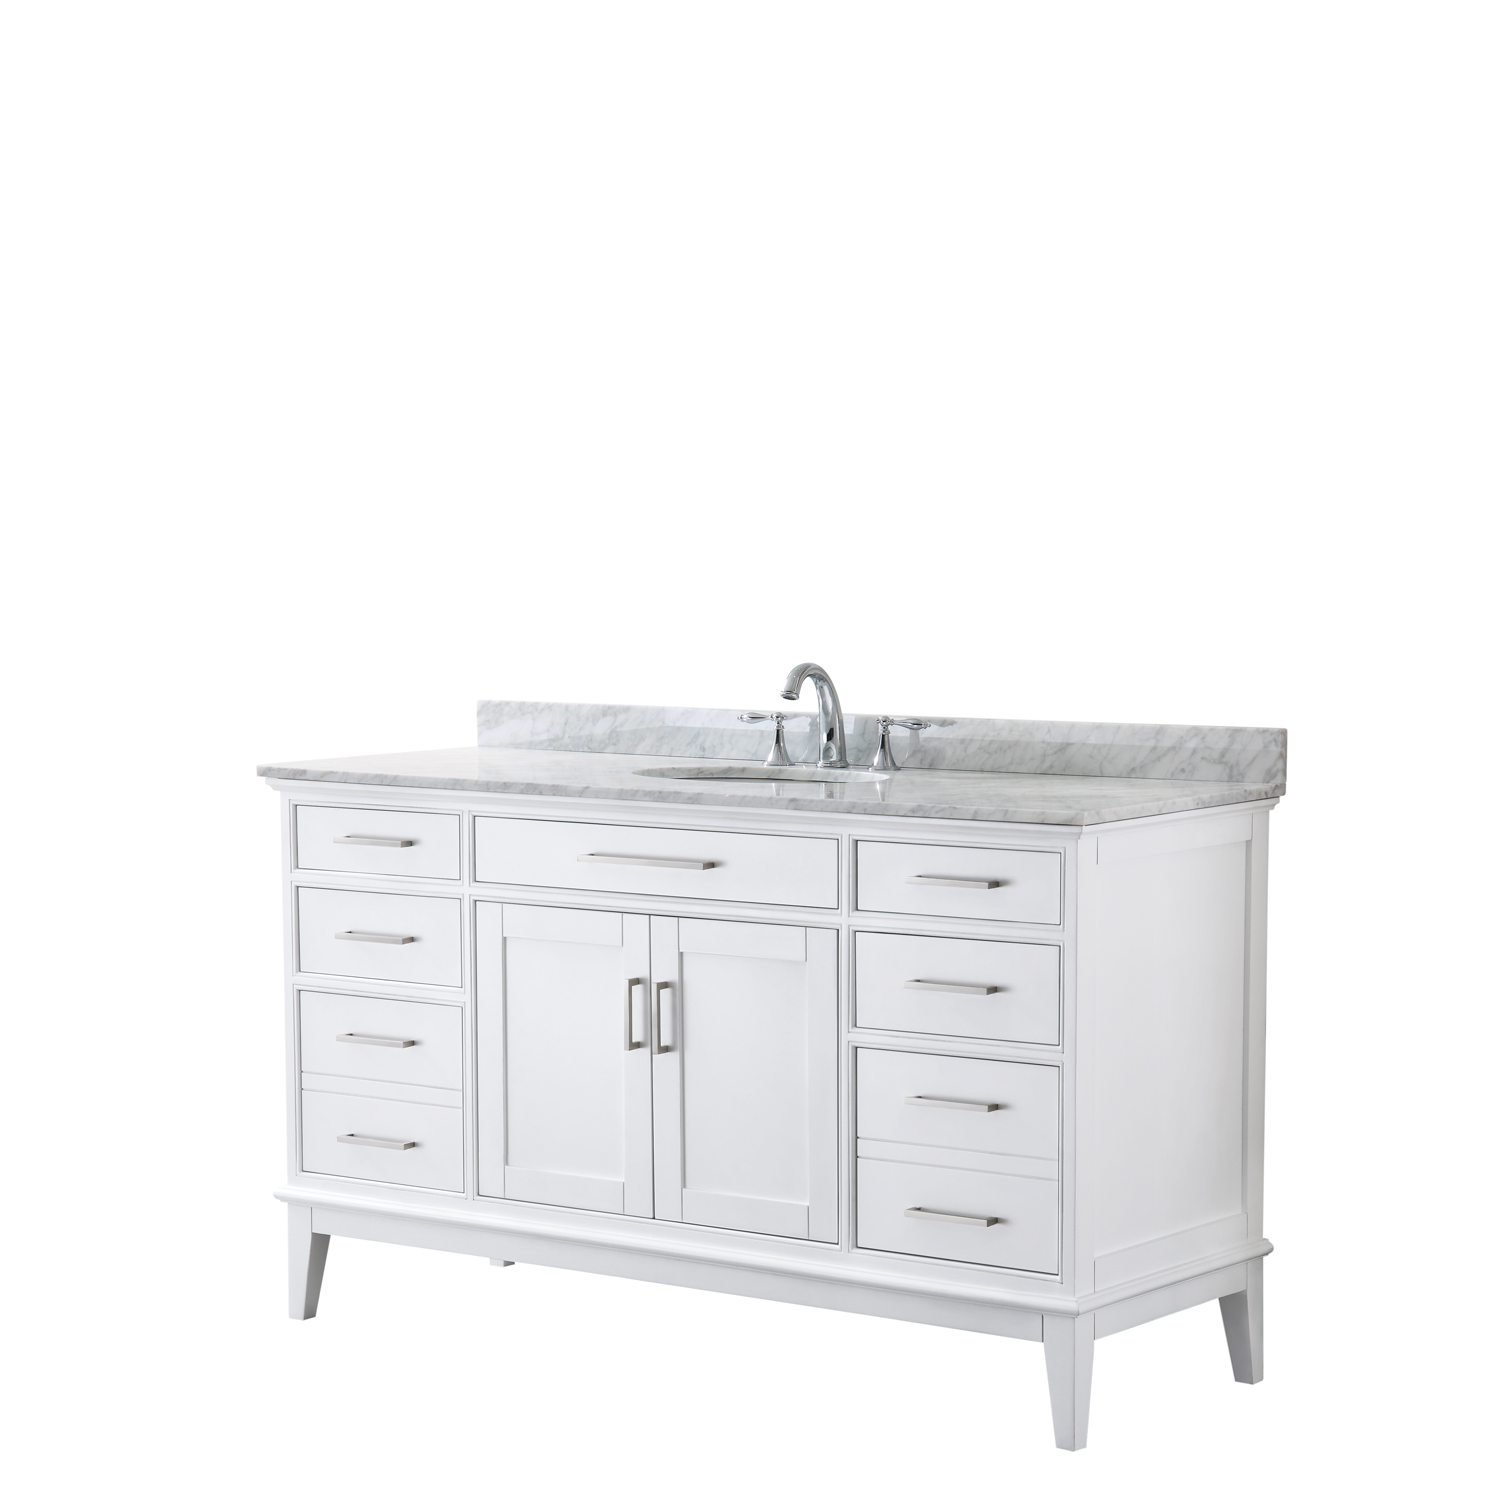 "Contemporary 60"" Single Bathroom Vanity in White, White Carrara Marble Countertop with Undermount Sink, and Mirror Options"